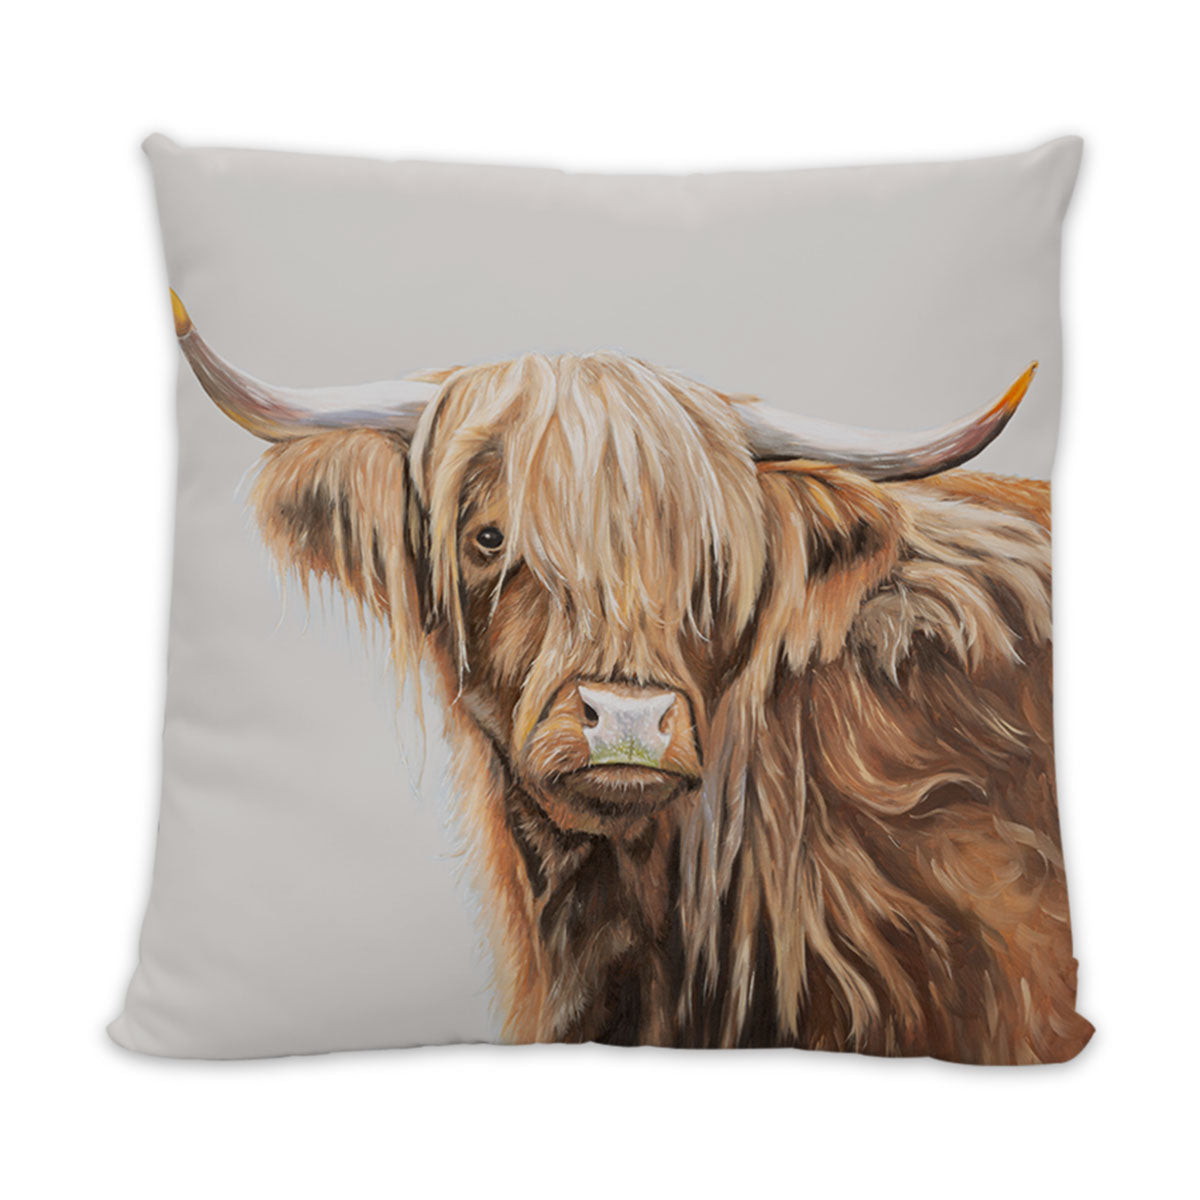 Highland Cow Cushion - light